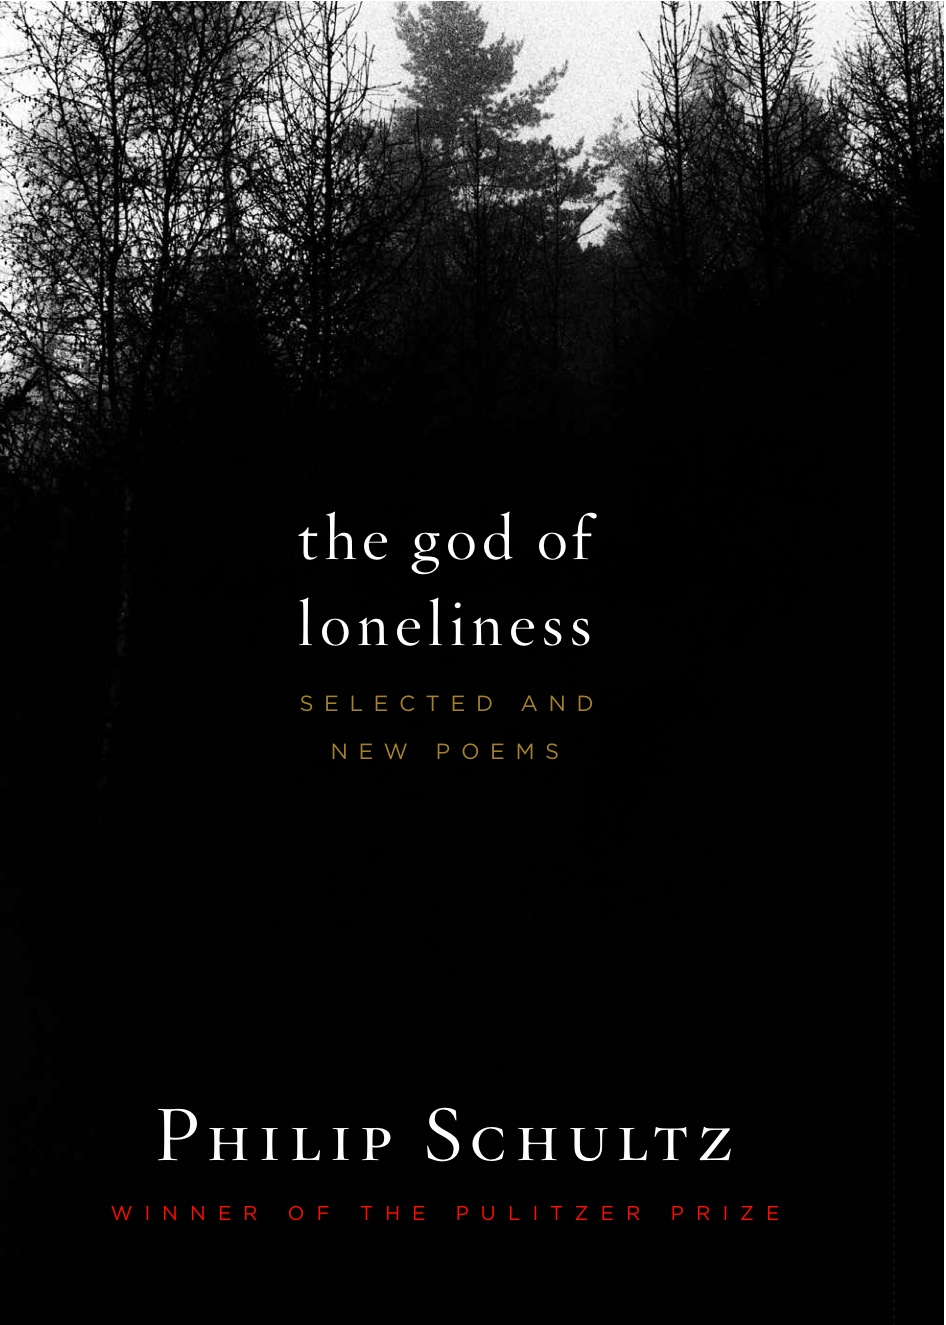 The God of Loneliness by Phillip Schultz